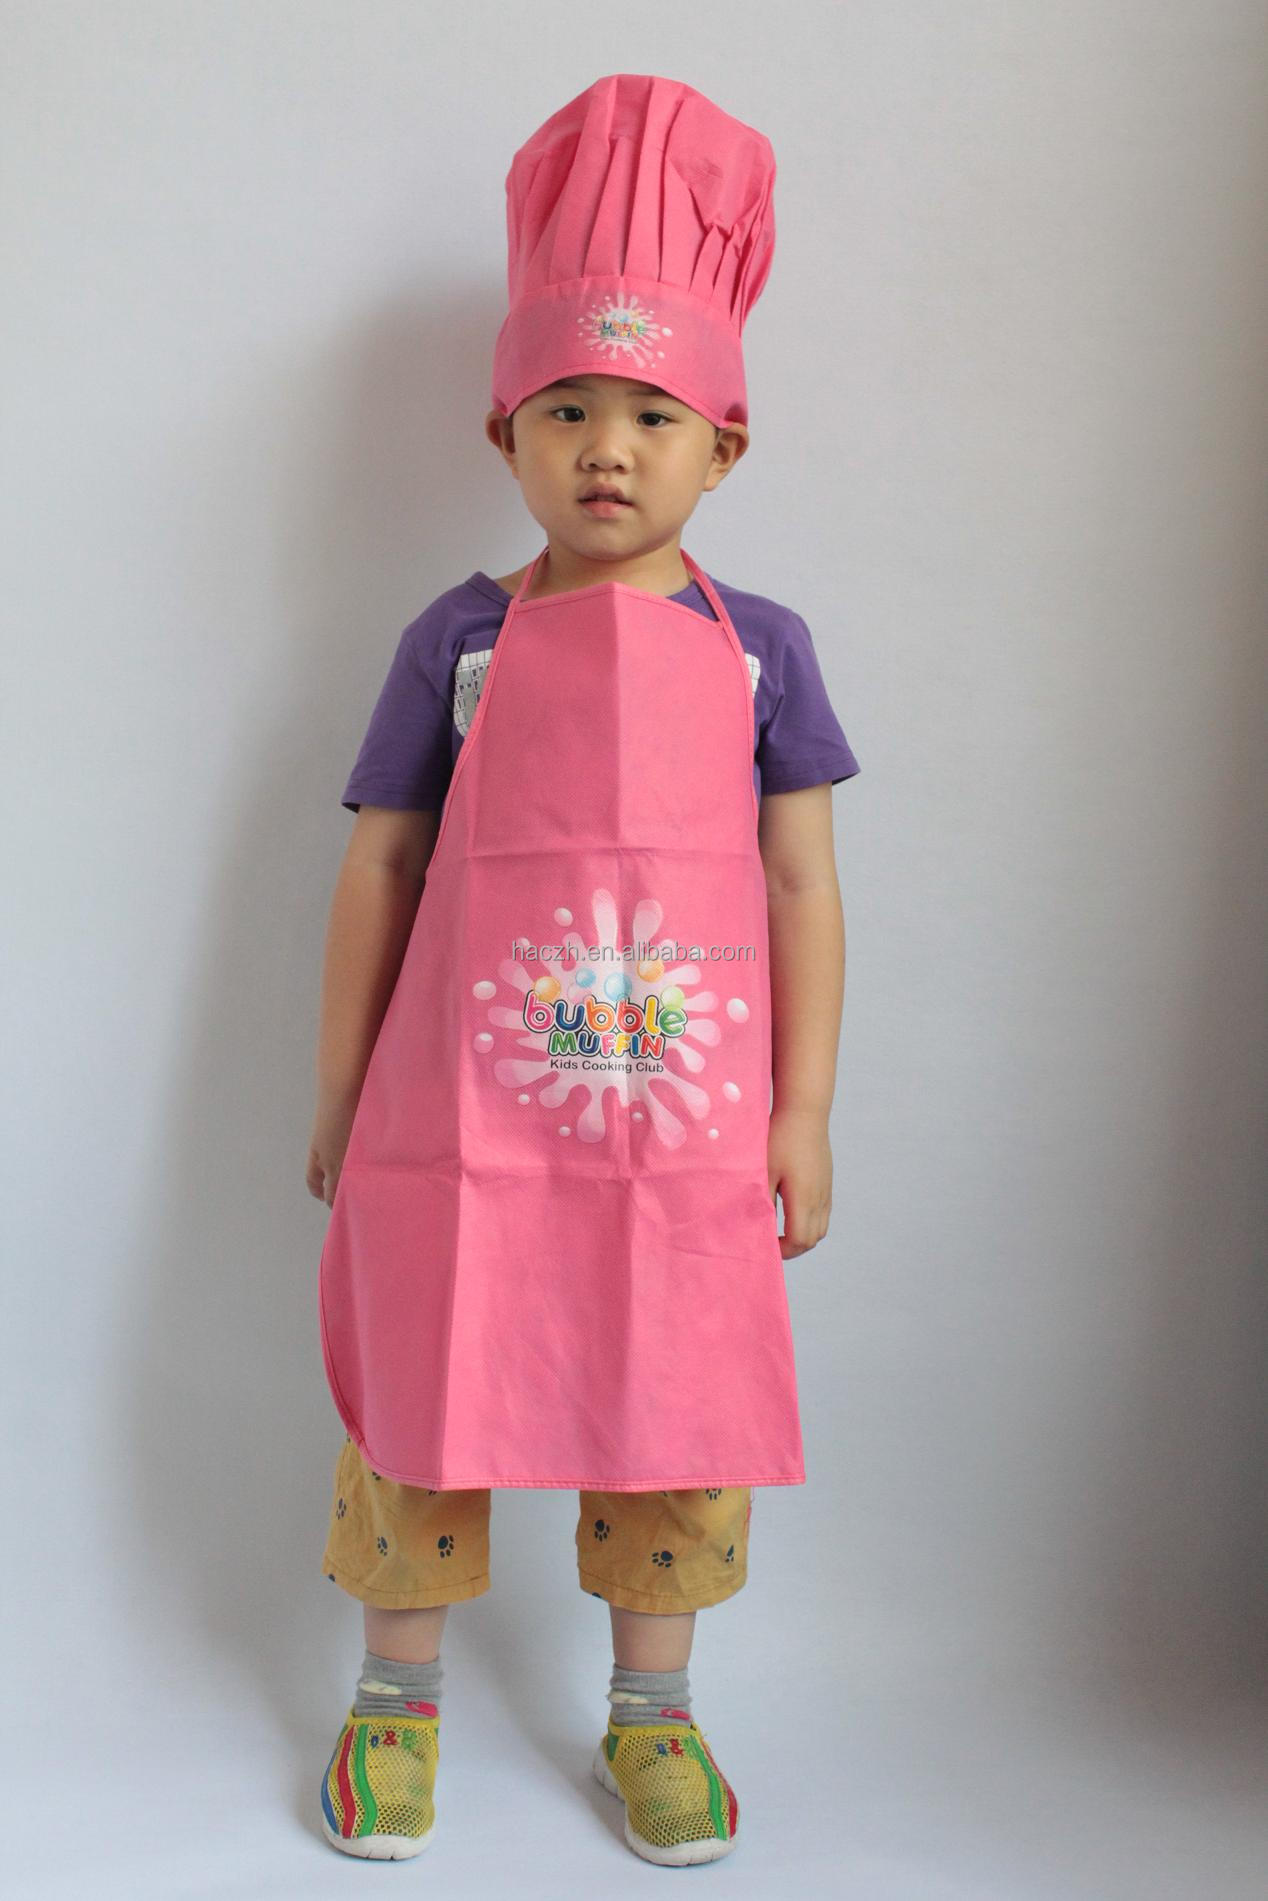 Design Kitchen Apron,Kids Kitchen Apron,Kids Kitchen Chef Hat - Buy Design  Kitchen Apron,Kids Kitchen Apron,Kids Kitchen Chef Hat Product on ...